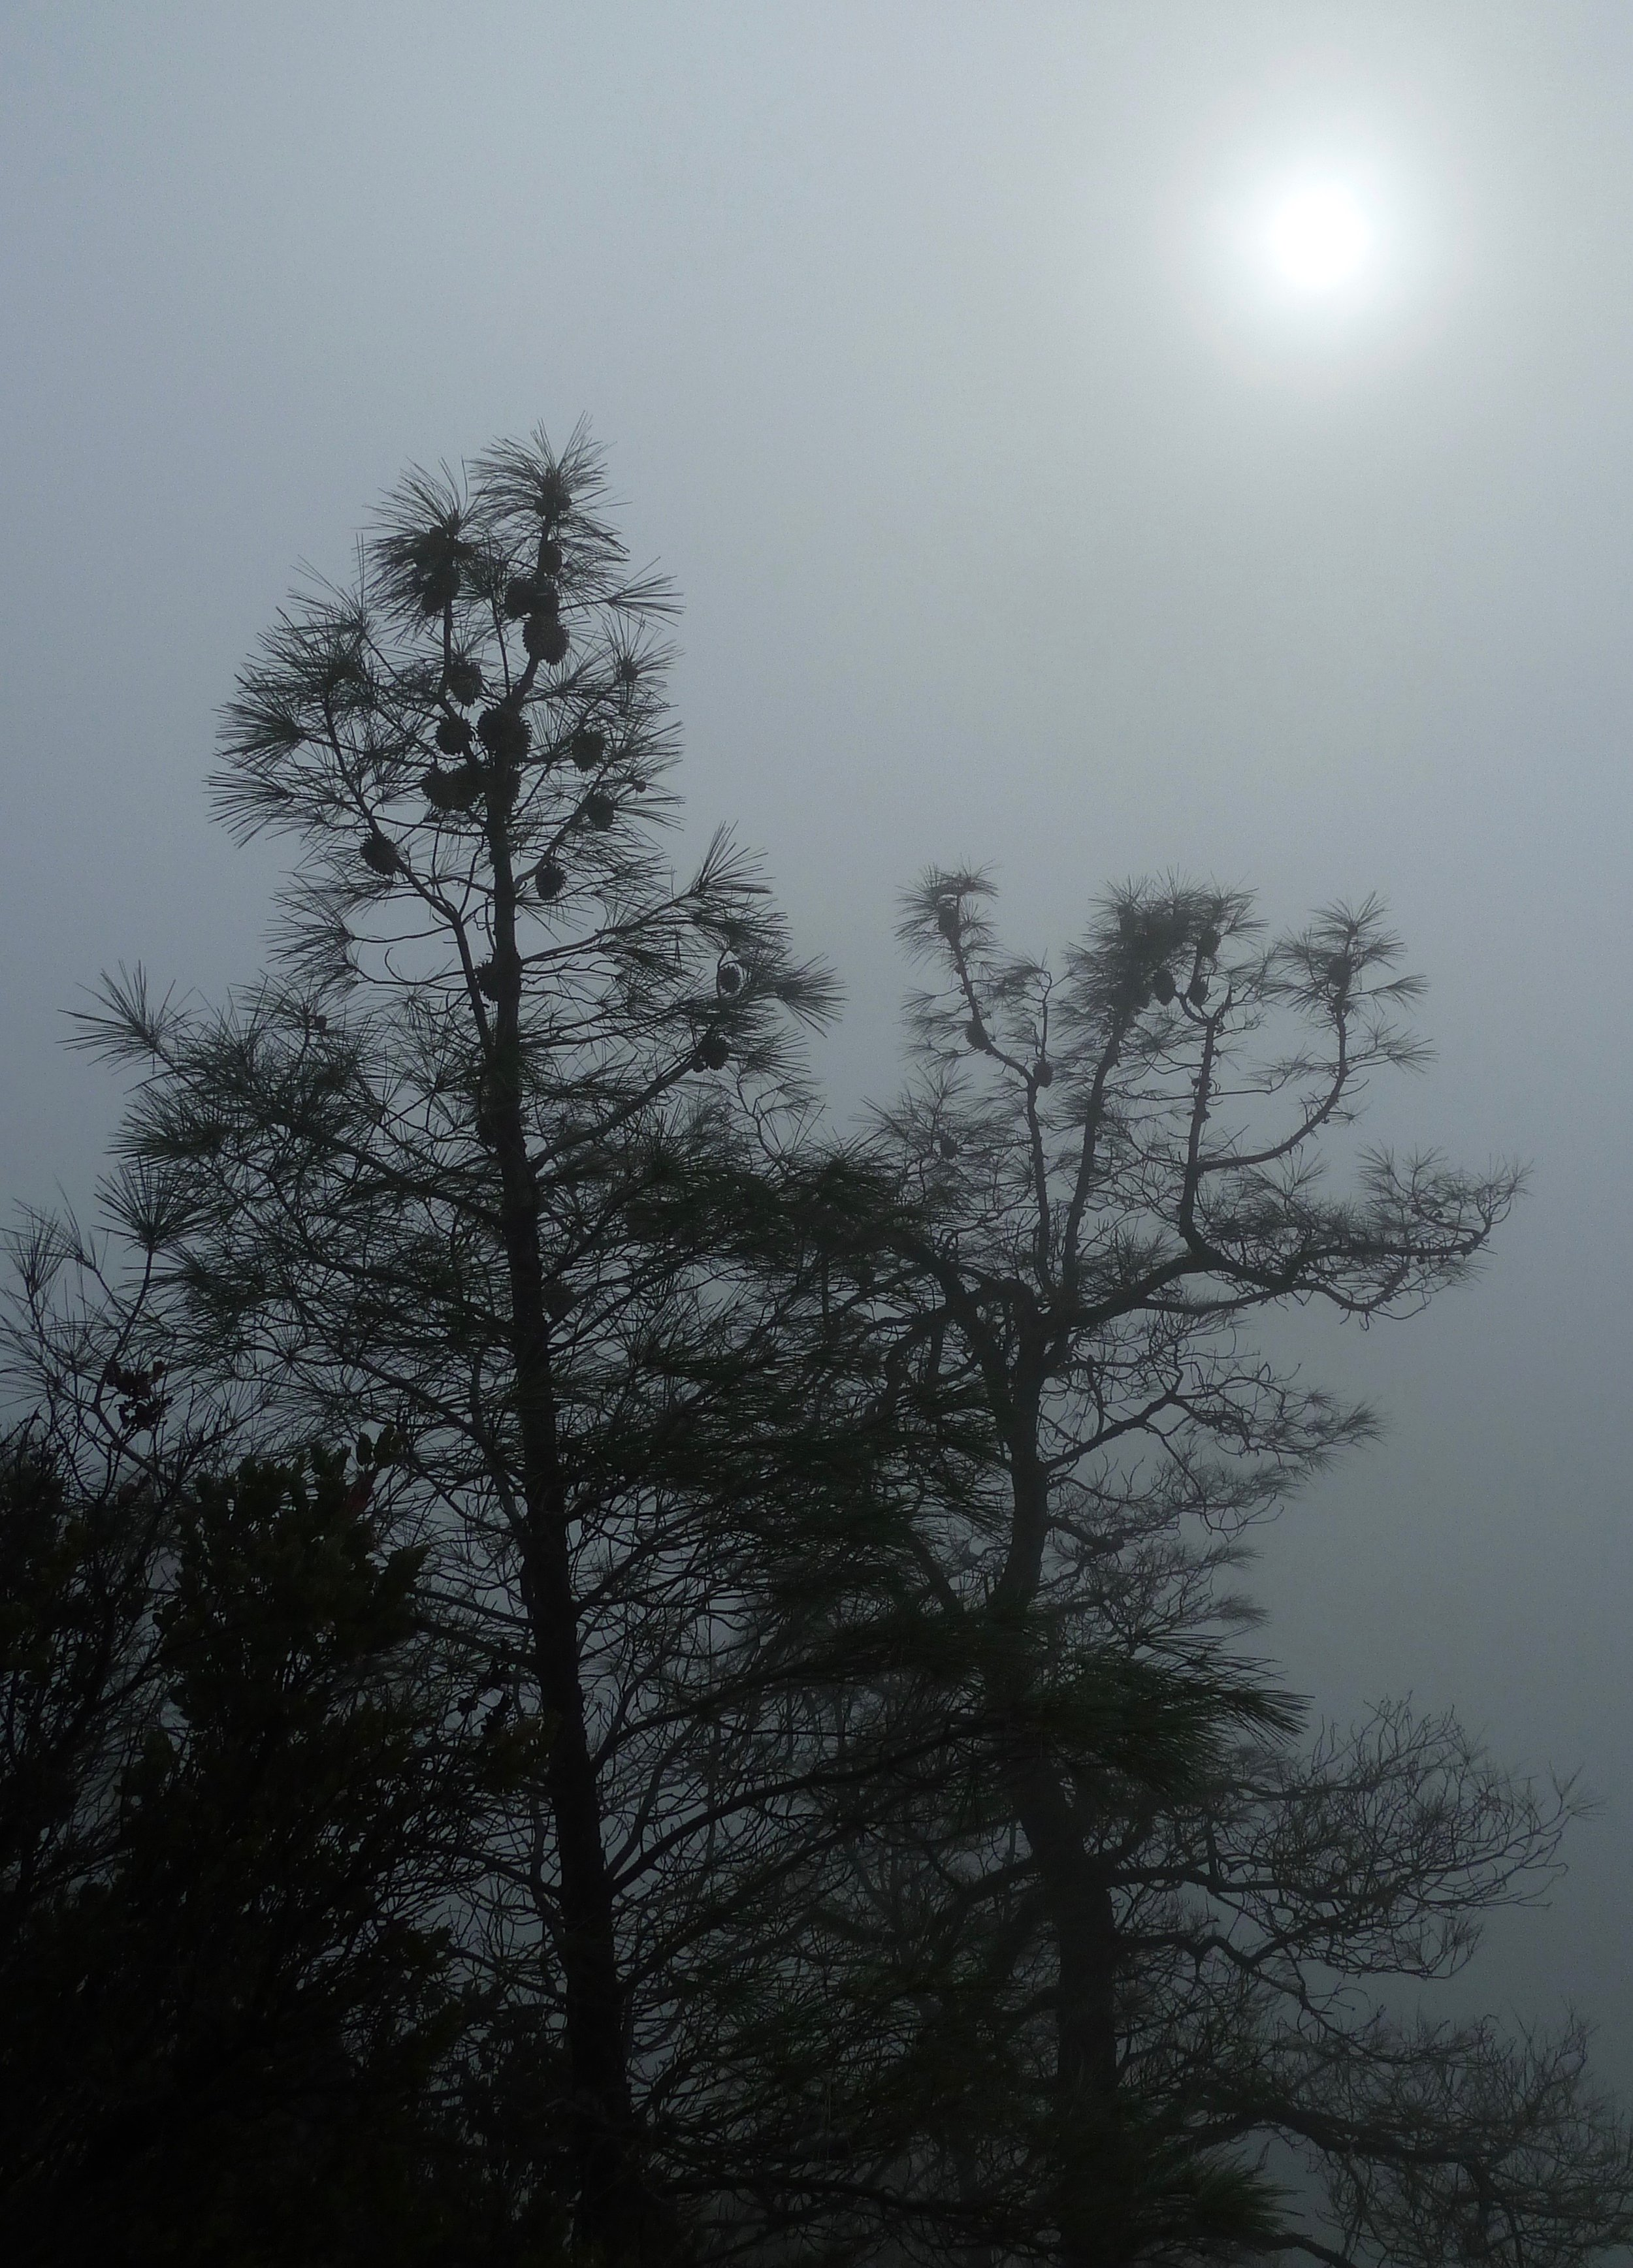 Coulter pines in the fog, Ridge Trail.